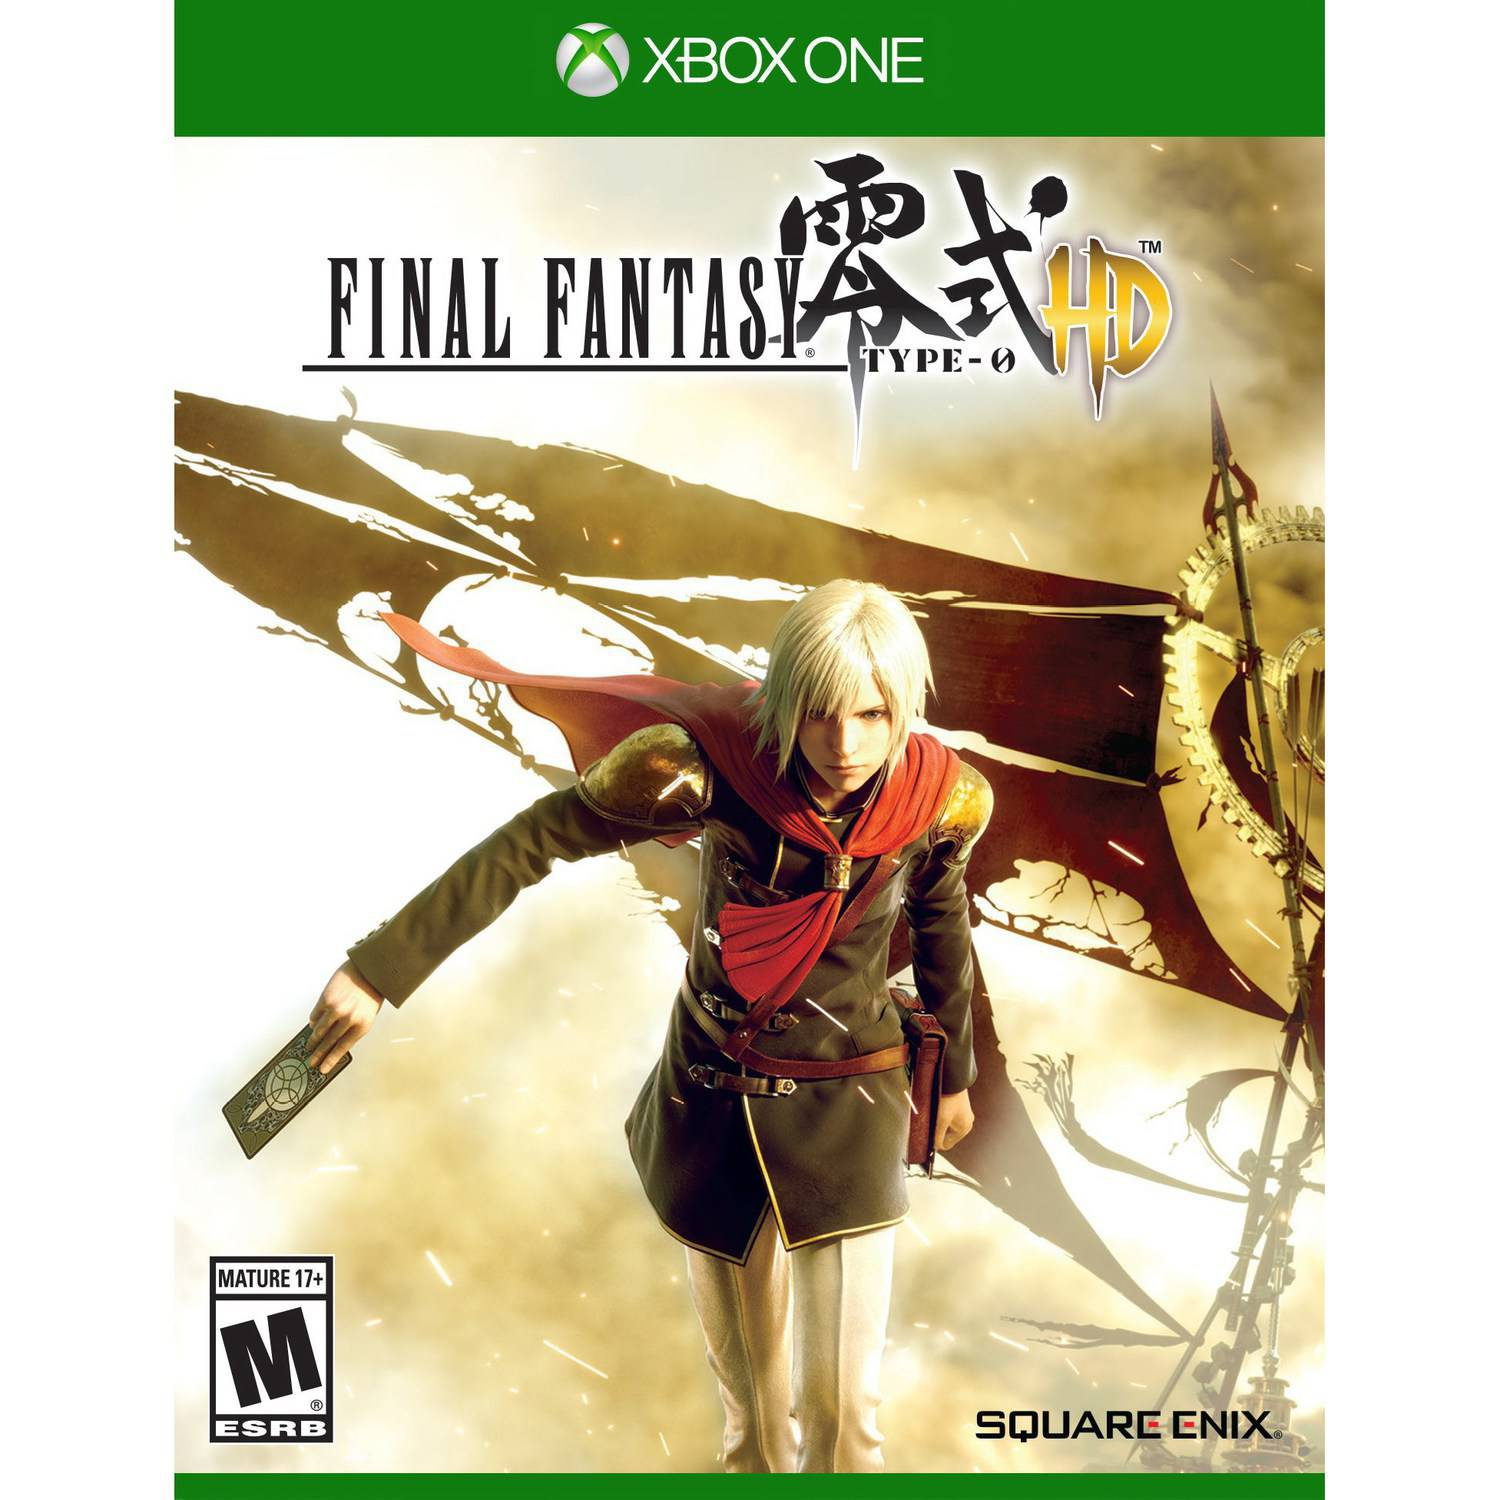 Final Fantasy Type-0 HD (Xbox One) - Pre-Owned